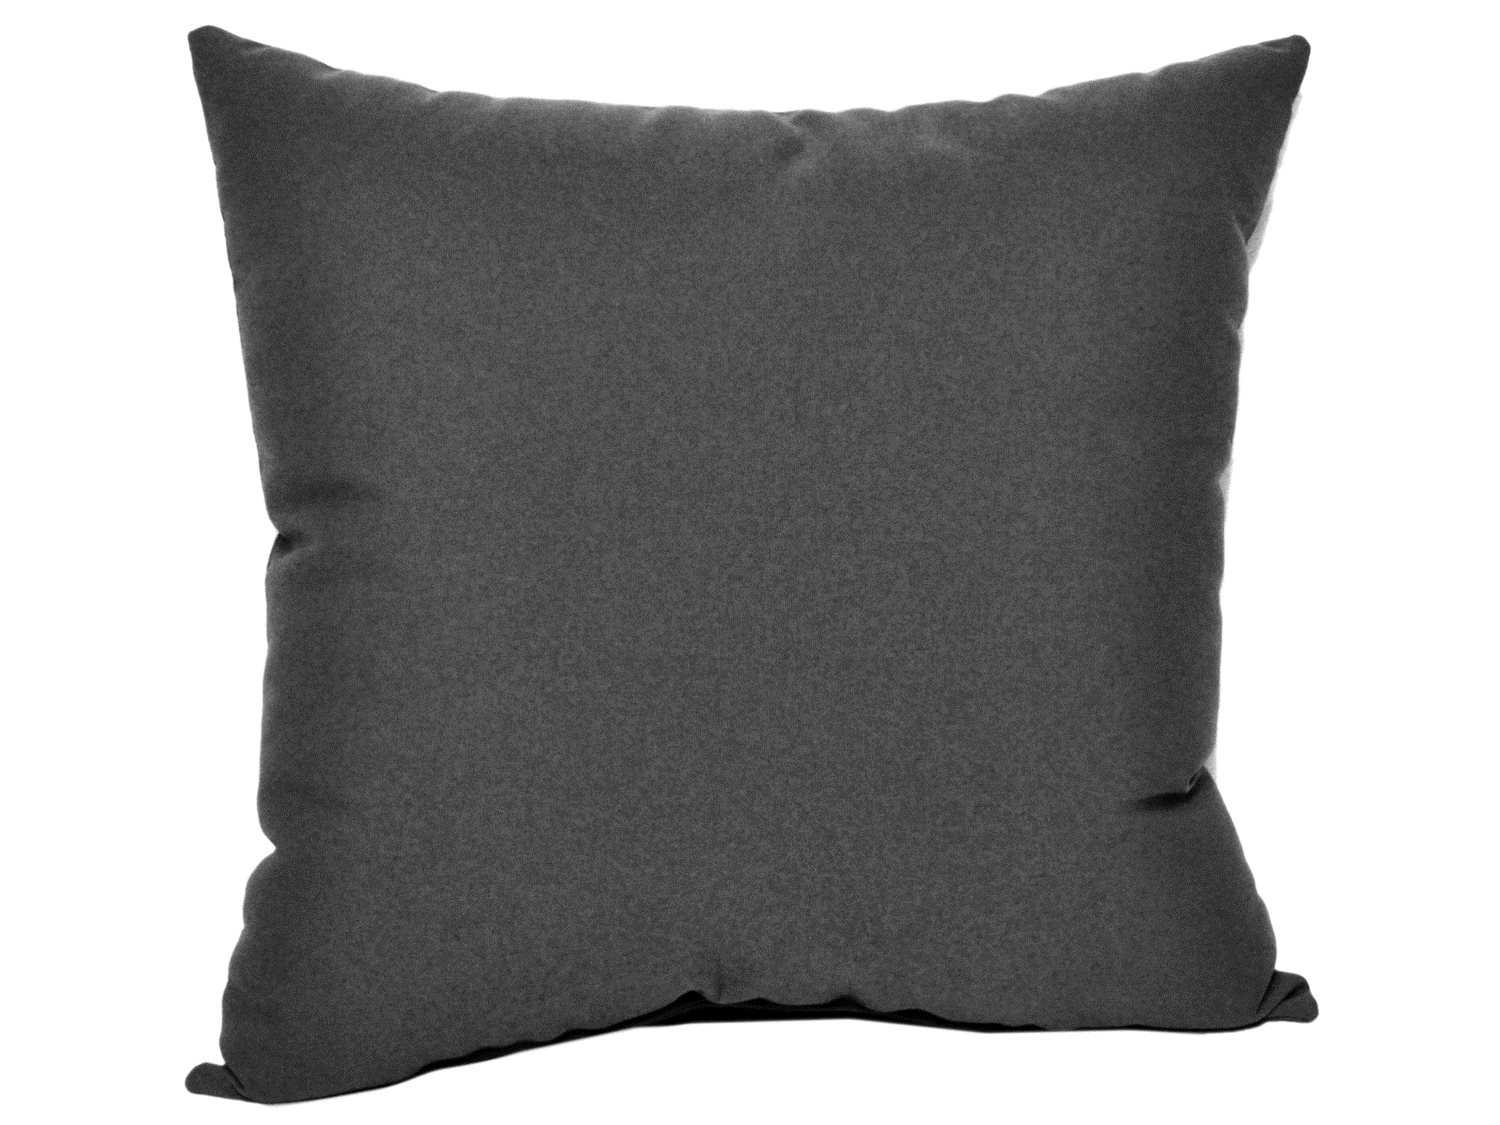 Meadowcraft 20 Pillow With No Welt